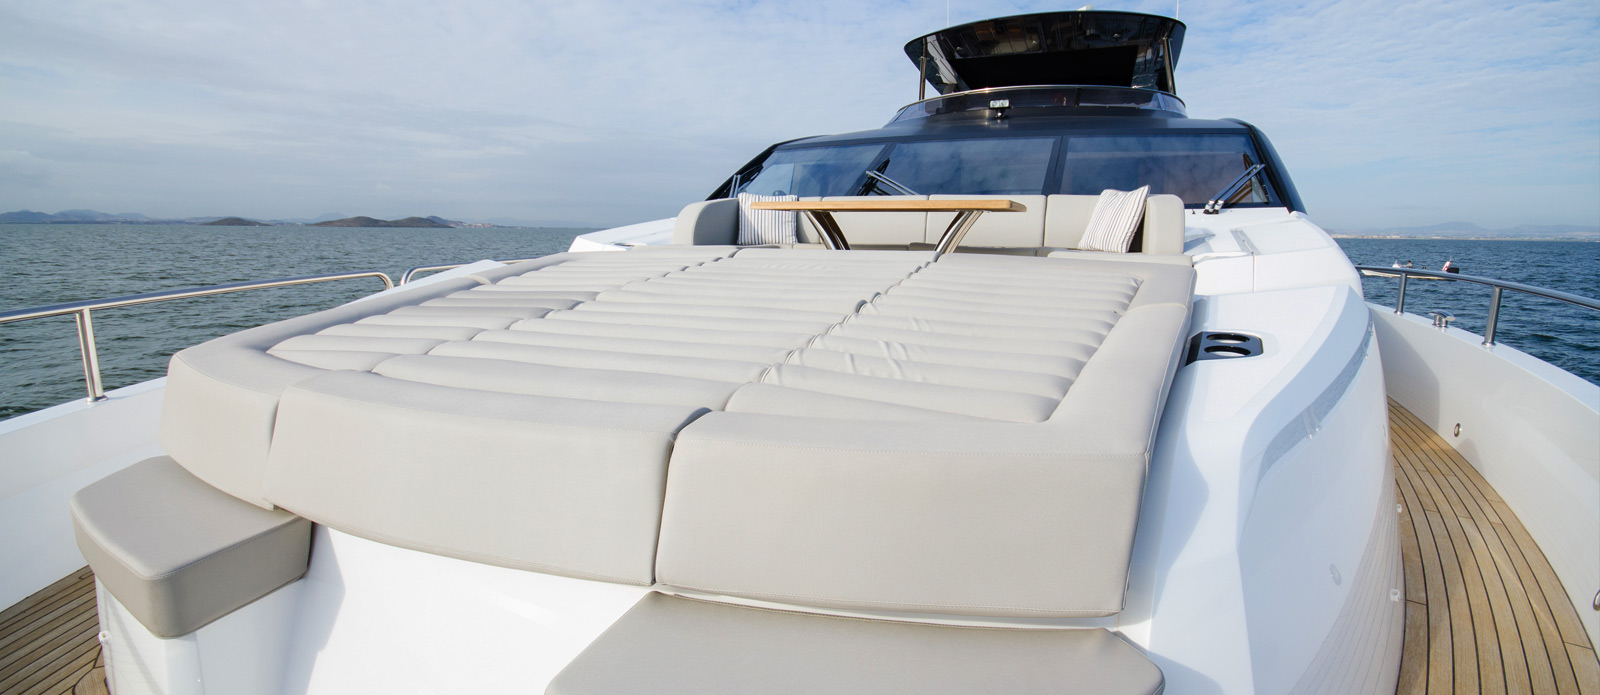 Sunseeker 86 Yacht - Bow-Seating